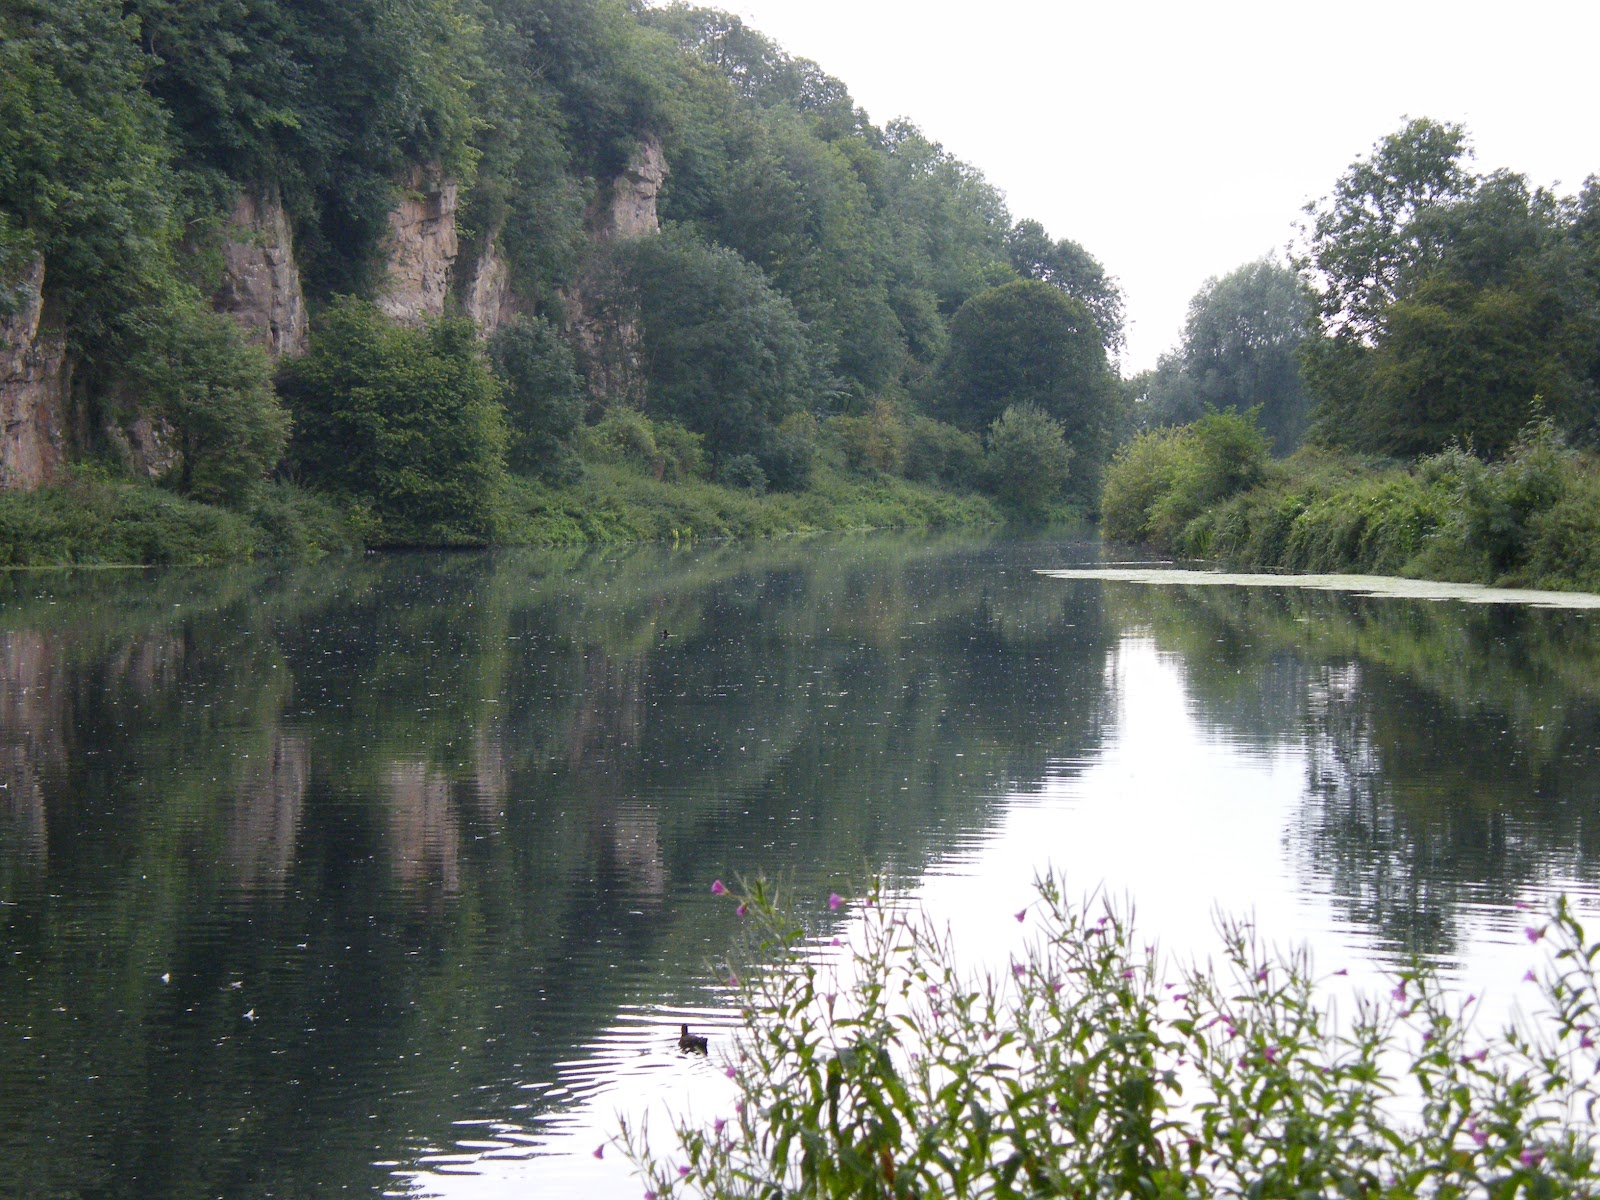 Creswell-Crags and the lake,NottinghamShire